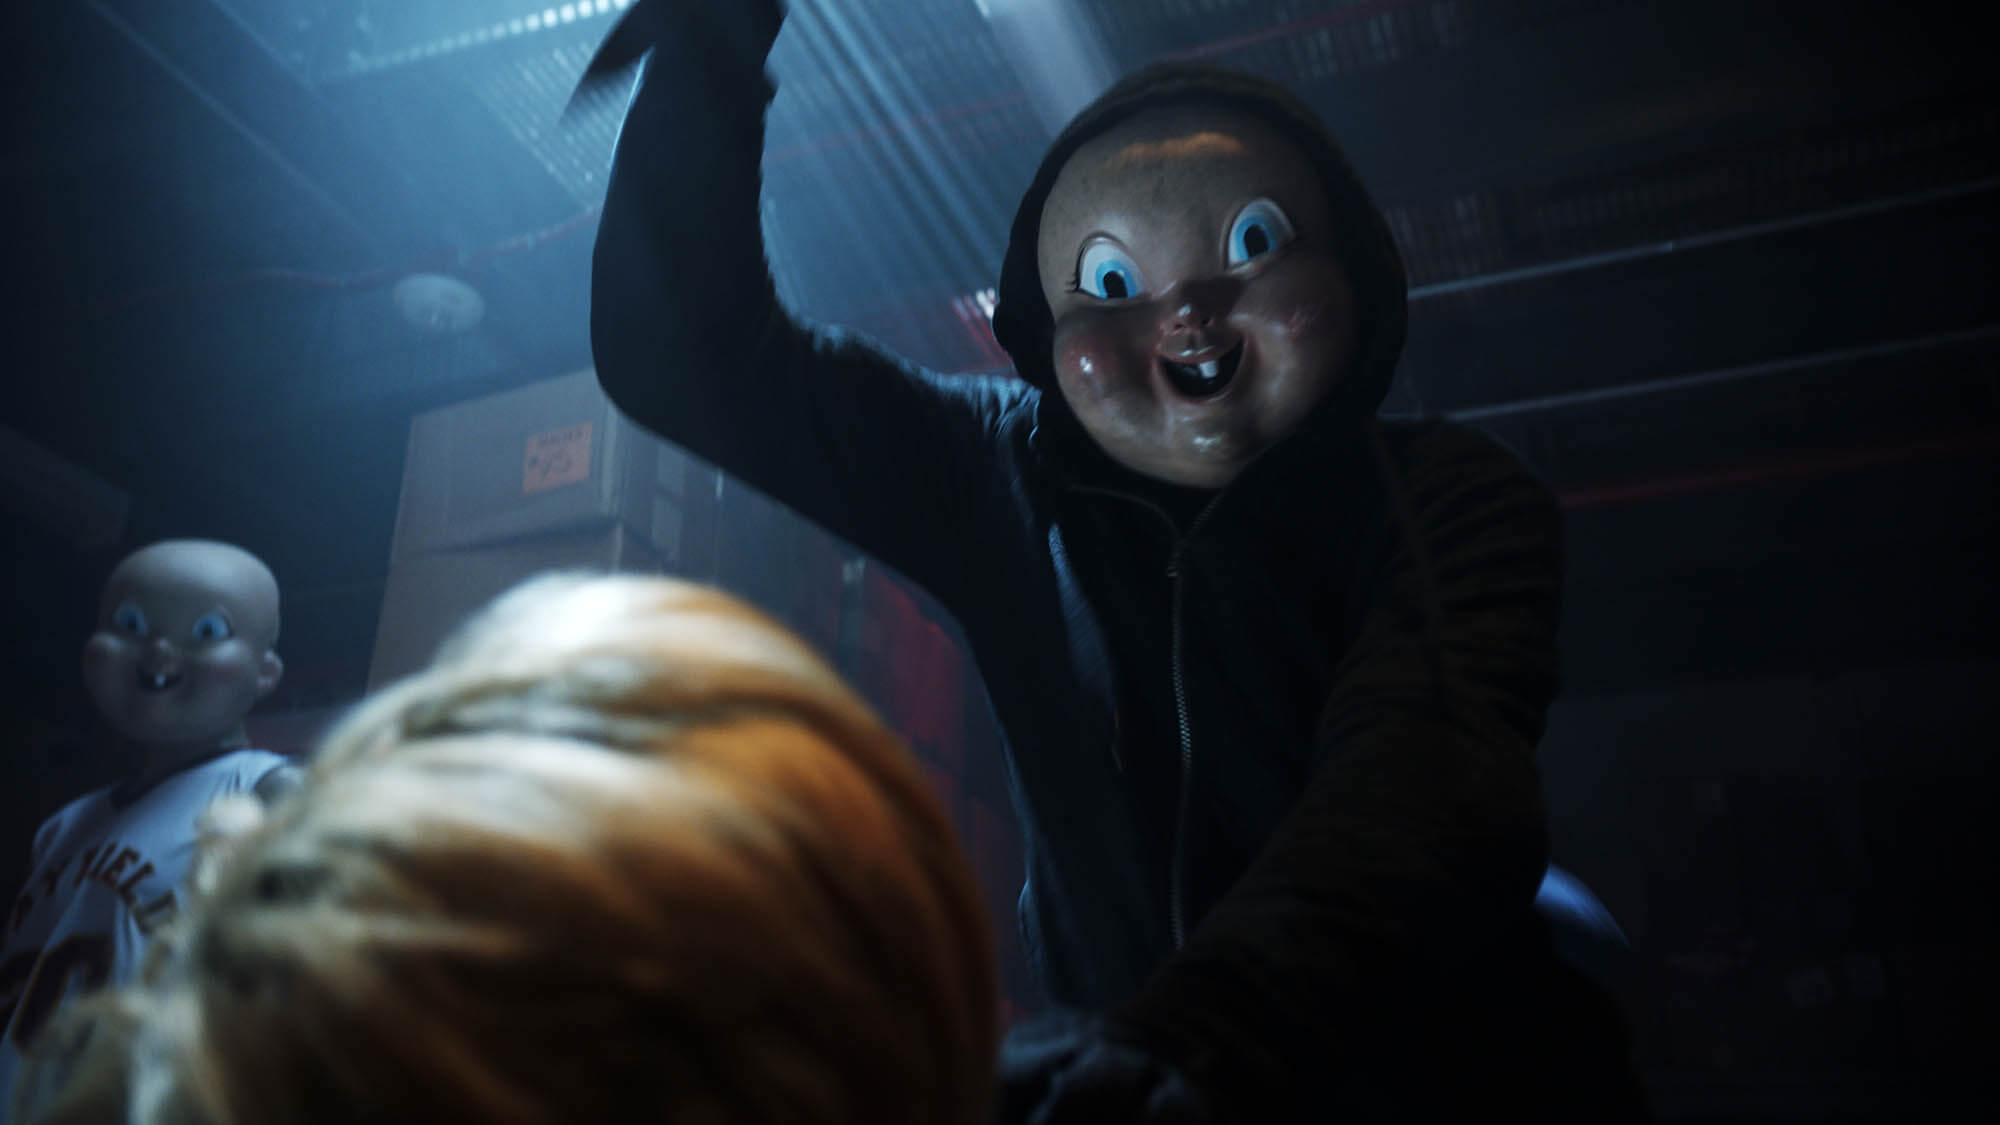 'Happy Death Day 2U' horror film changes release date to avoid school shooting anniversary